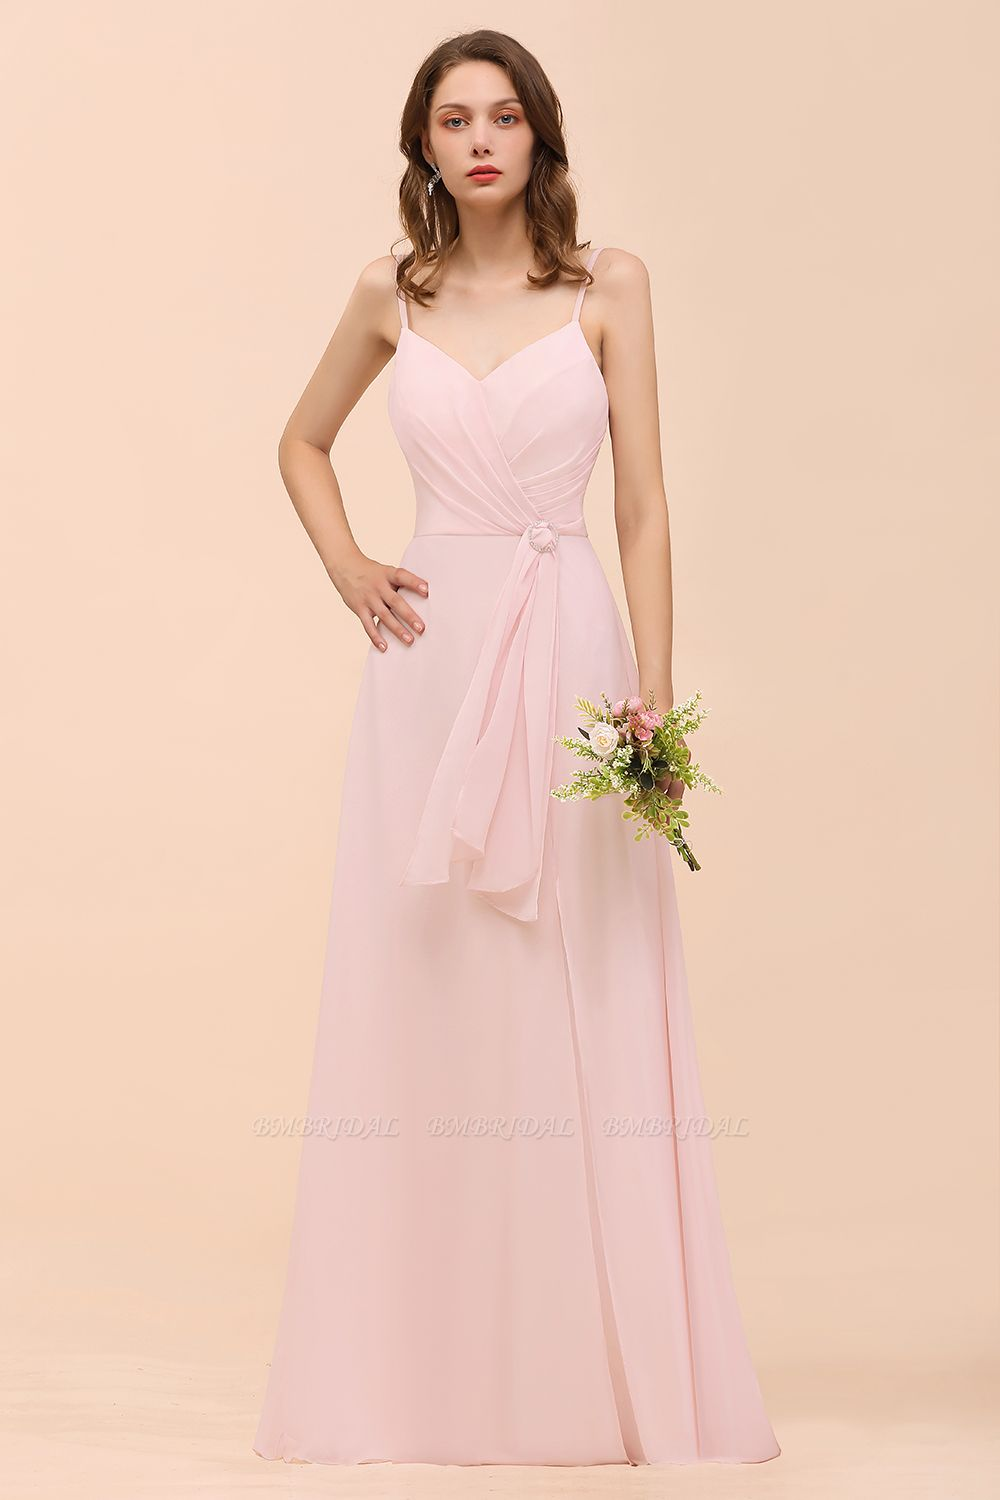 BMbridal Affordable Blushing Pink Spaghetti Straps Ruffle Bridesmaid Dress